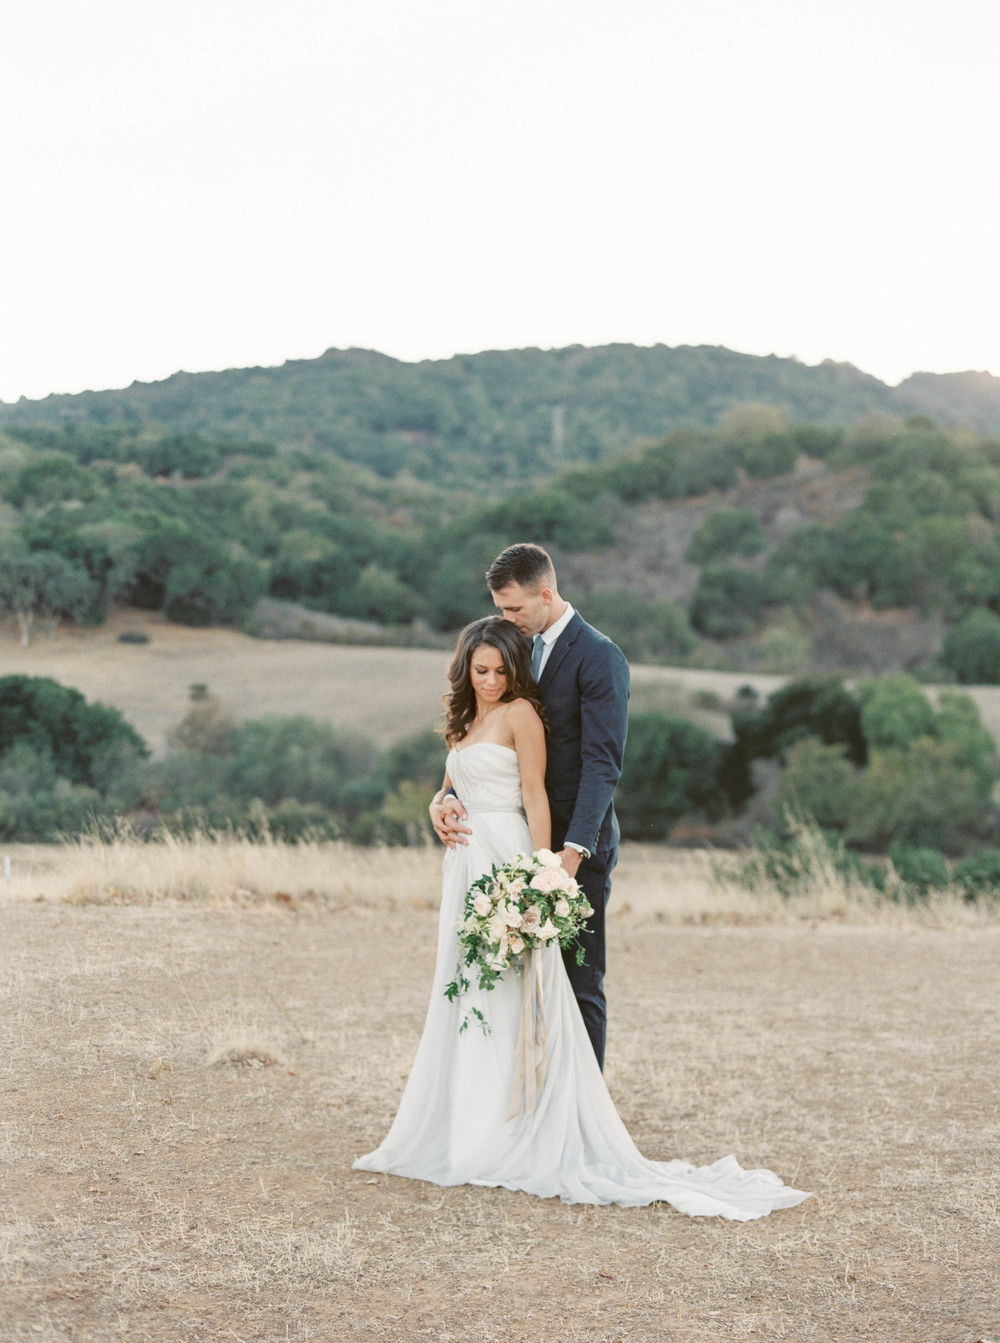 Meghan Mehan Photography - Fine Art Film Photography - San Francisco | Napa | Sonoma | Santa Barbara | Big Sur - 123.jpg